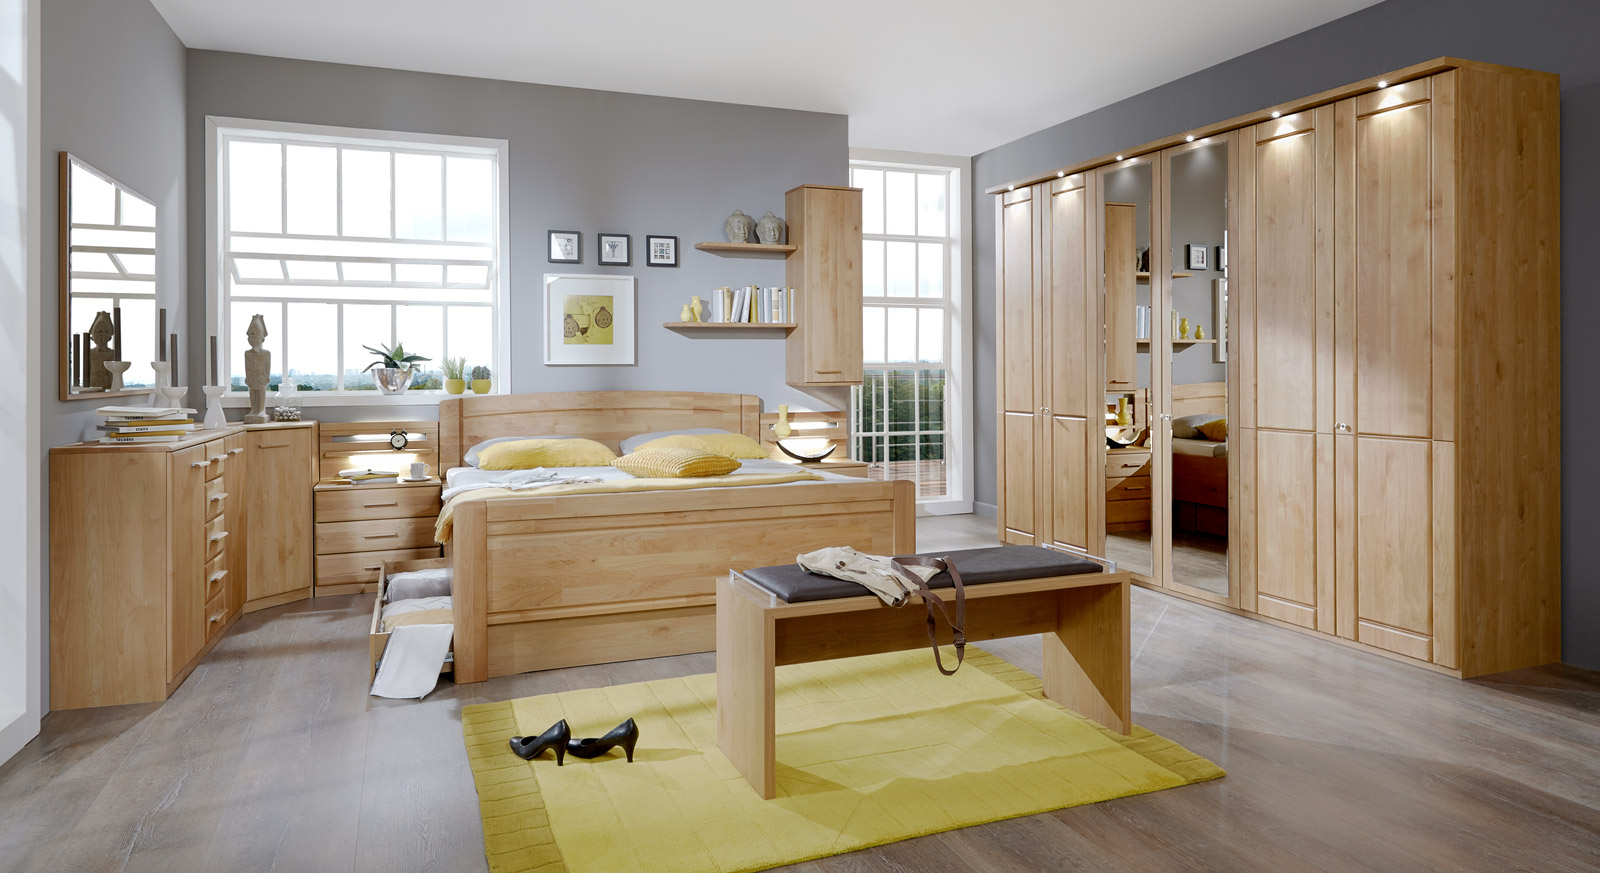 h ngeschrank f r schlafzimmer optional mit regalb den trikomo. Black Bedroom Furniture Sets. Home Design Ideas